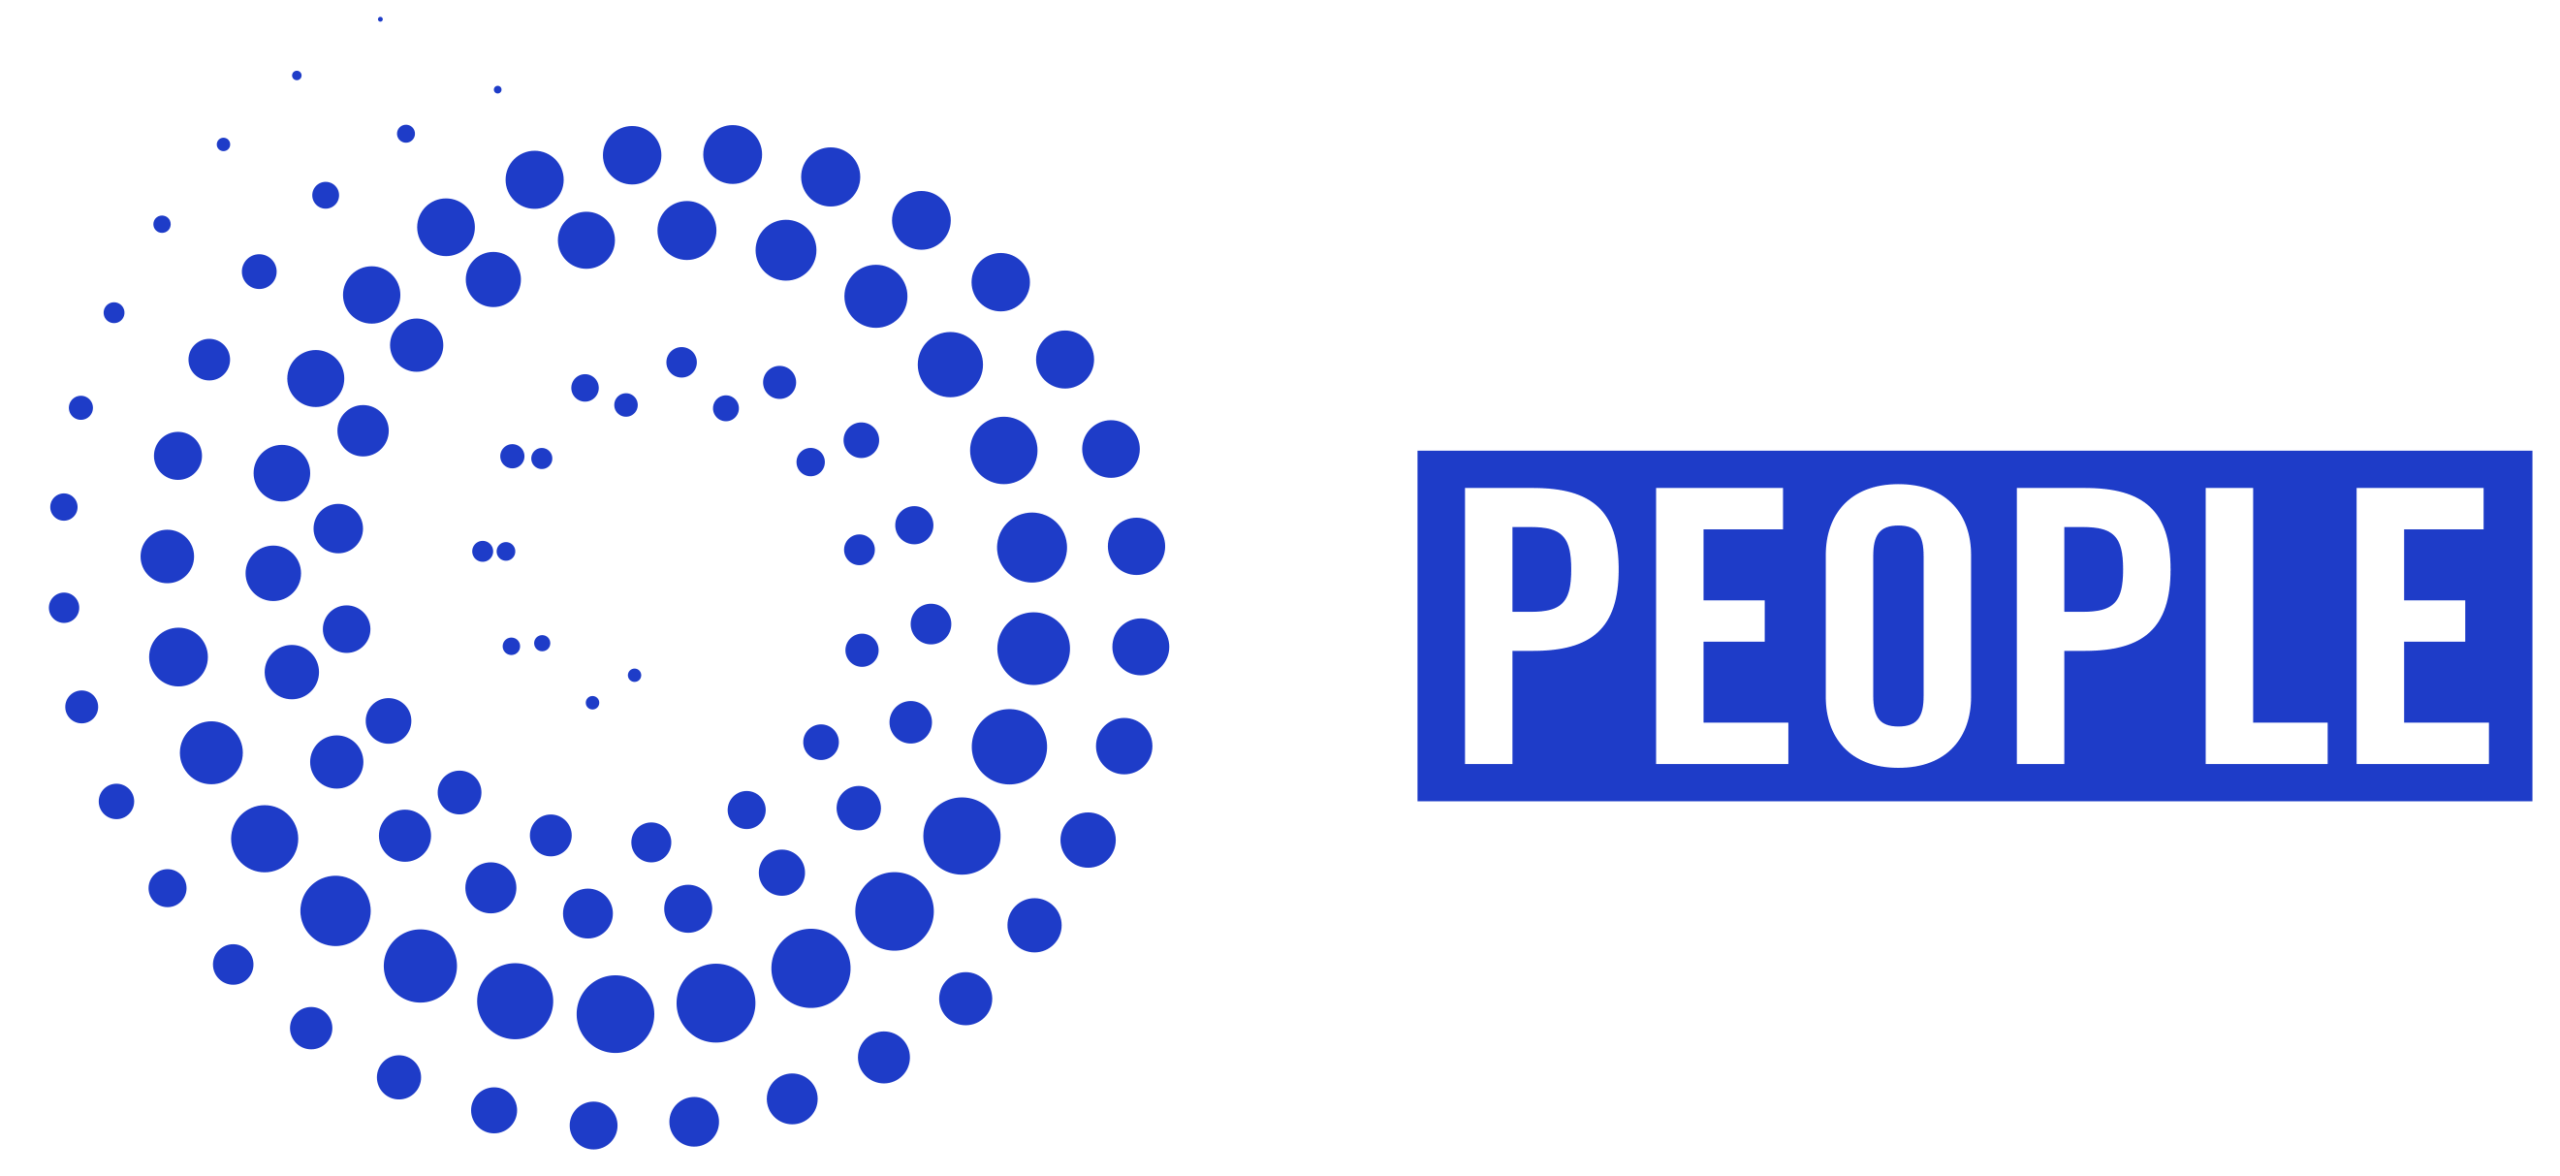 Agile People Day